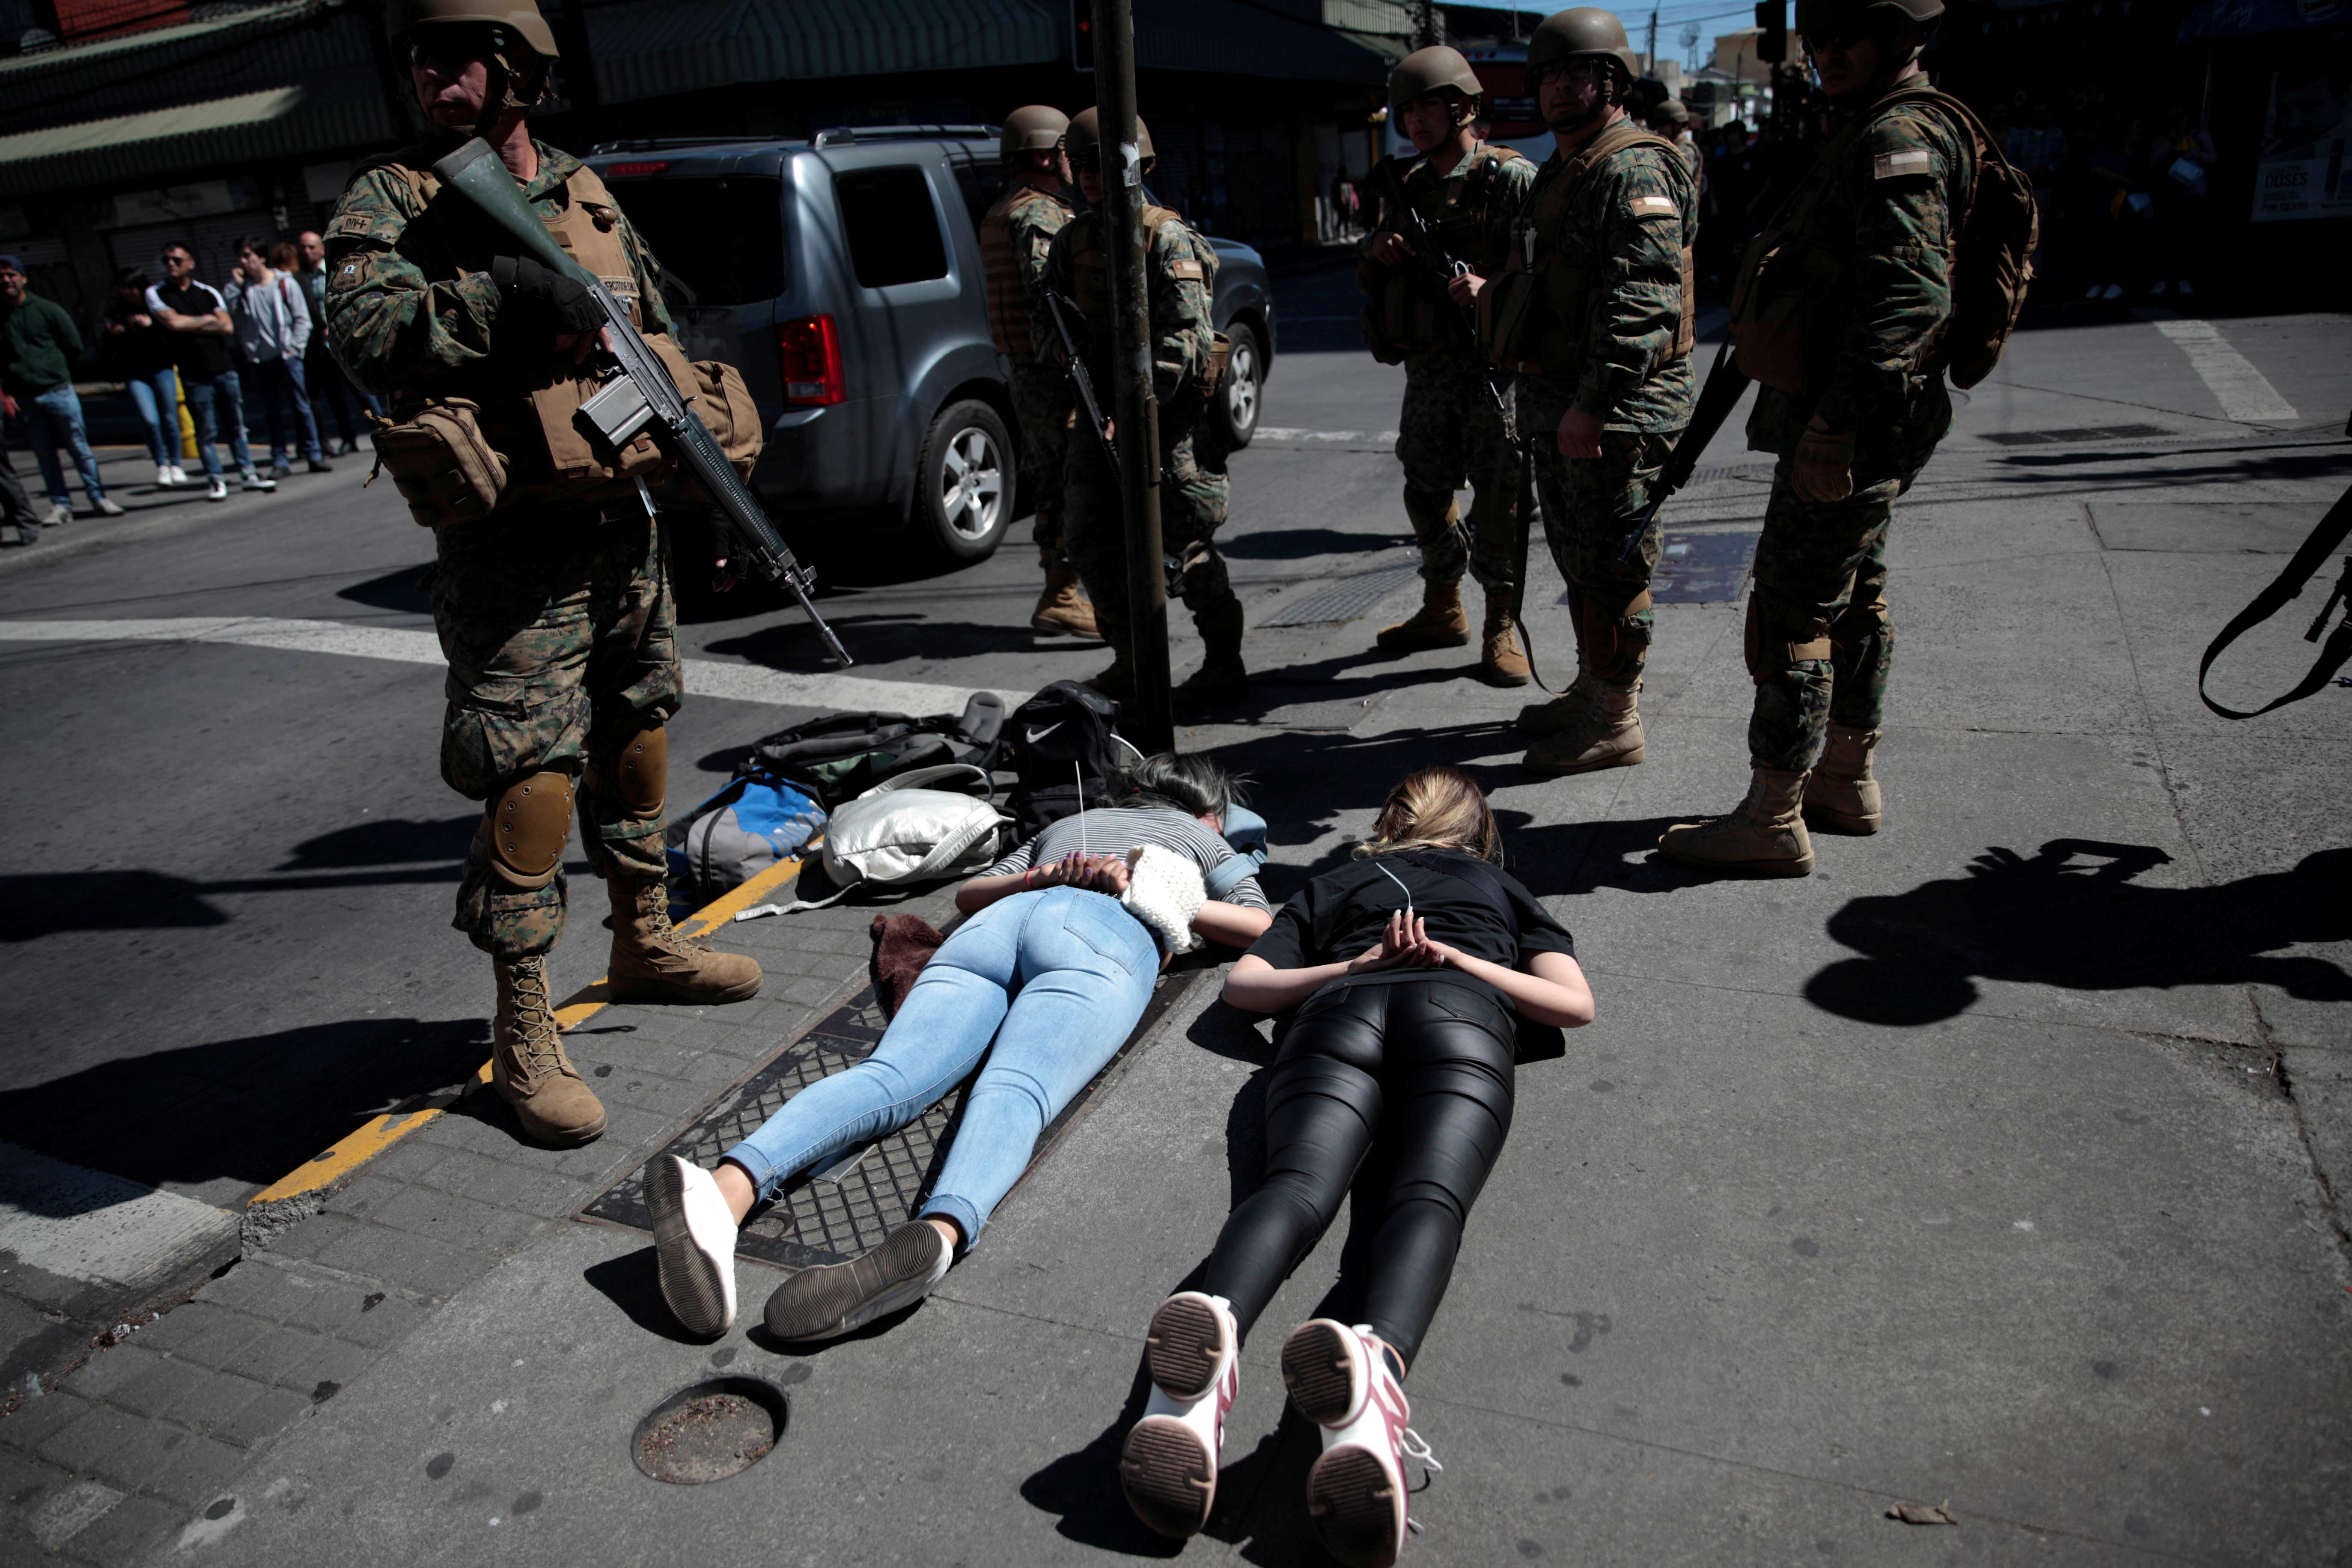 Chile's Pinera seeks forgiveness from hard-pressed citizens, offers...